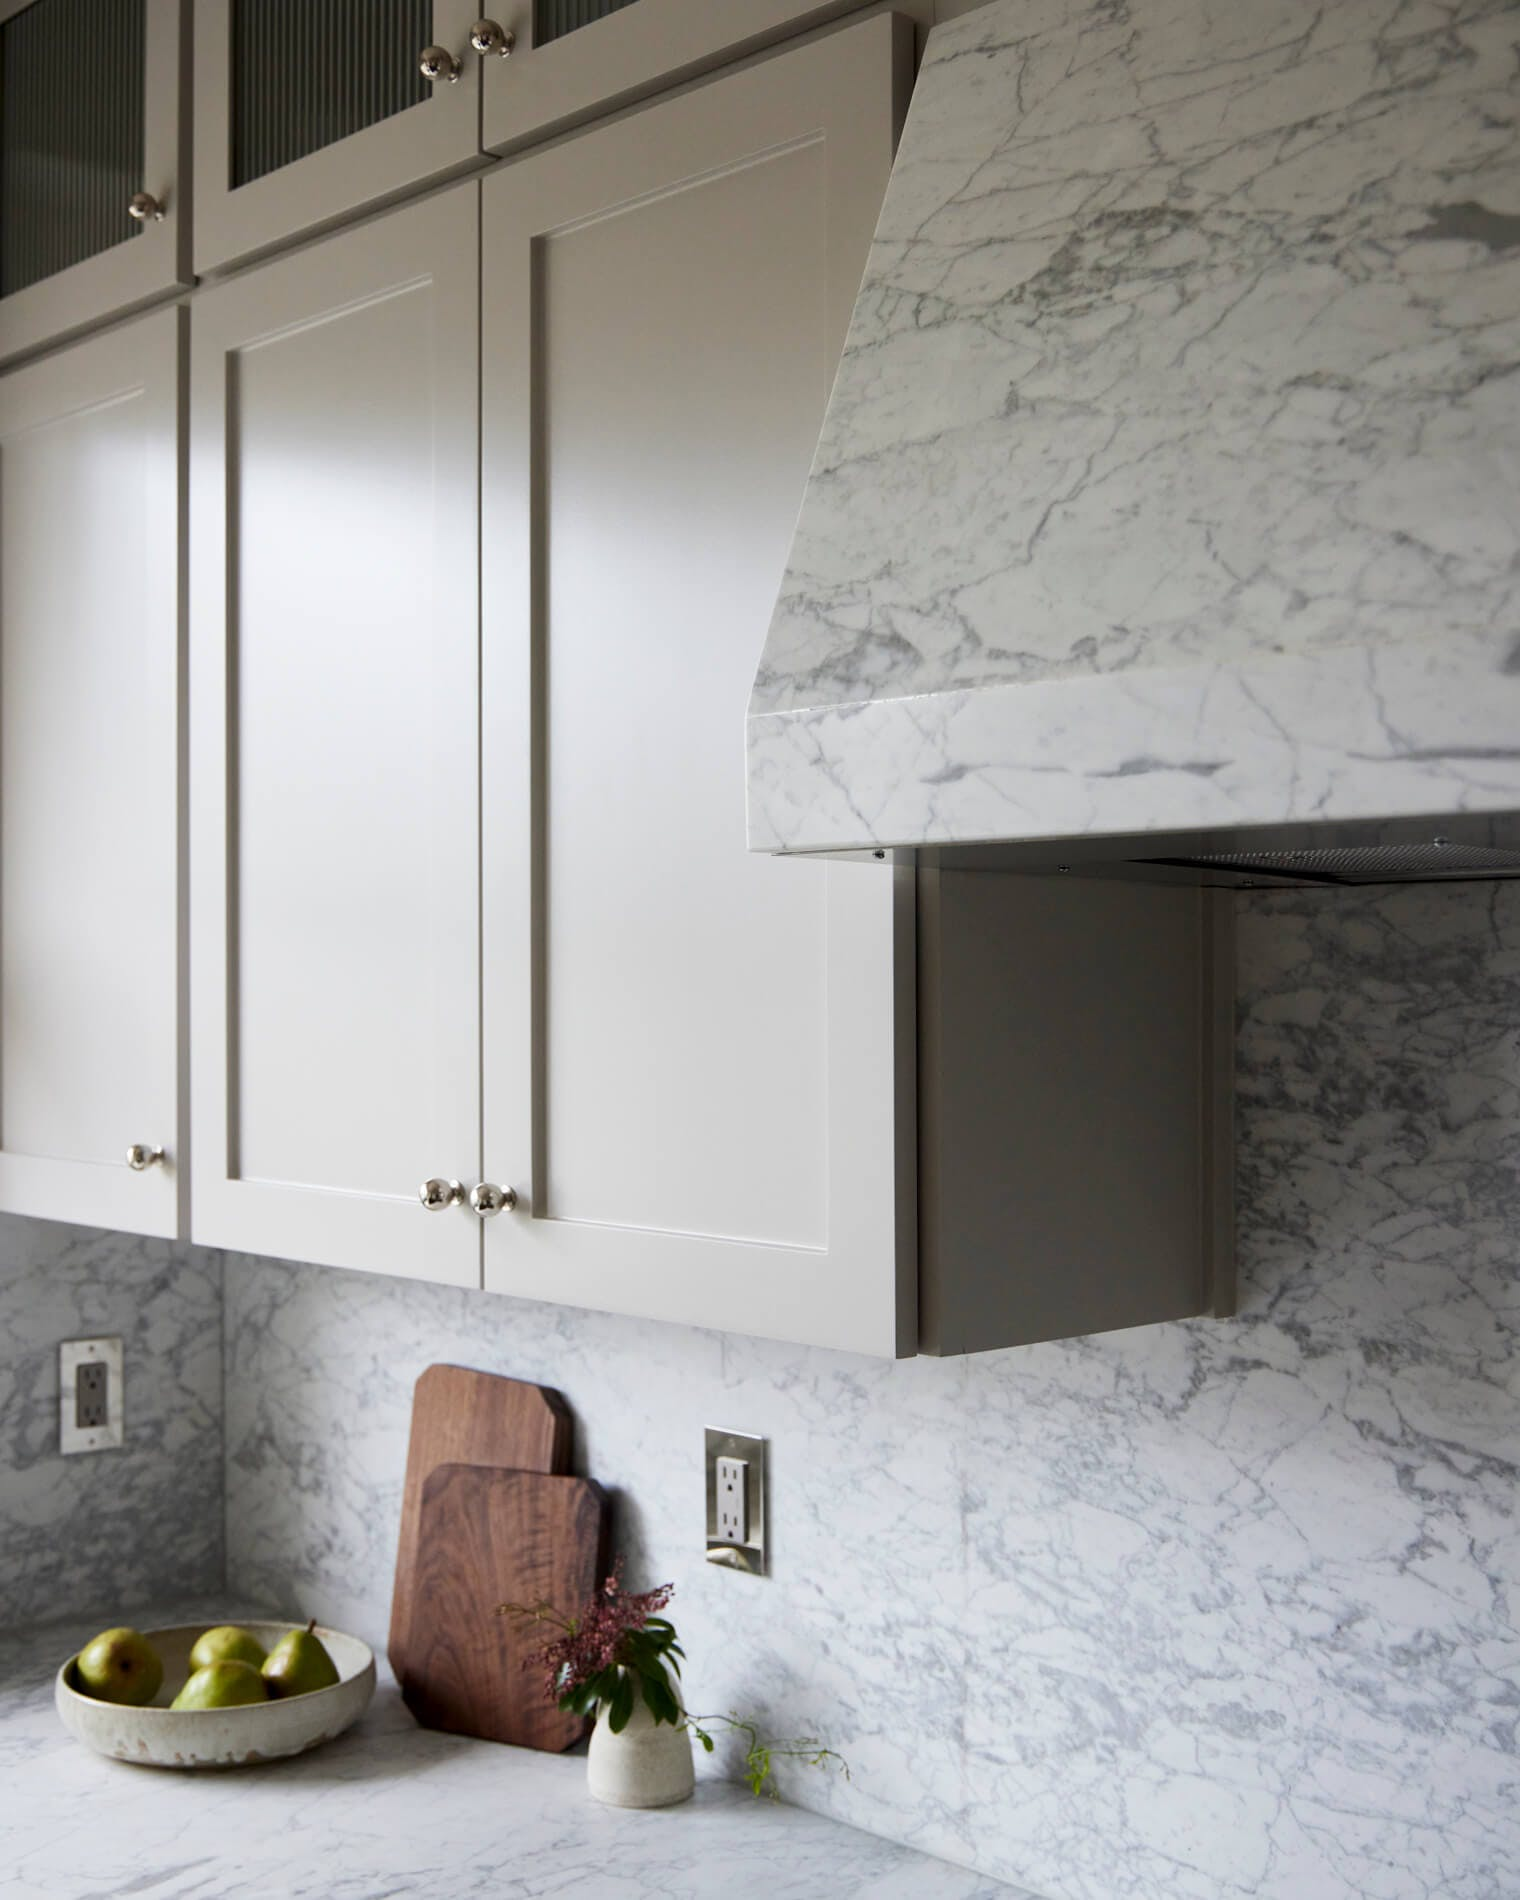 Kitchen cupboards and marble hood cover